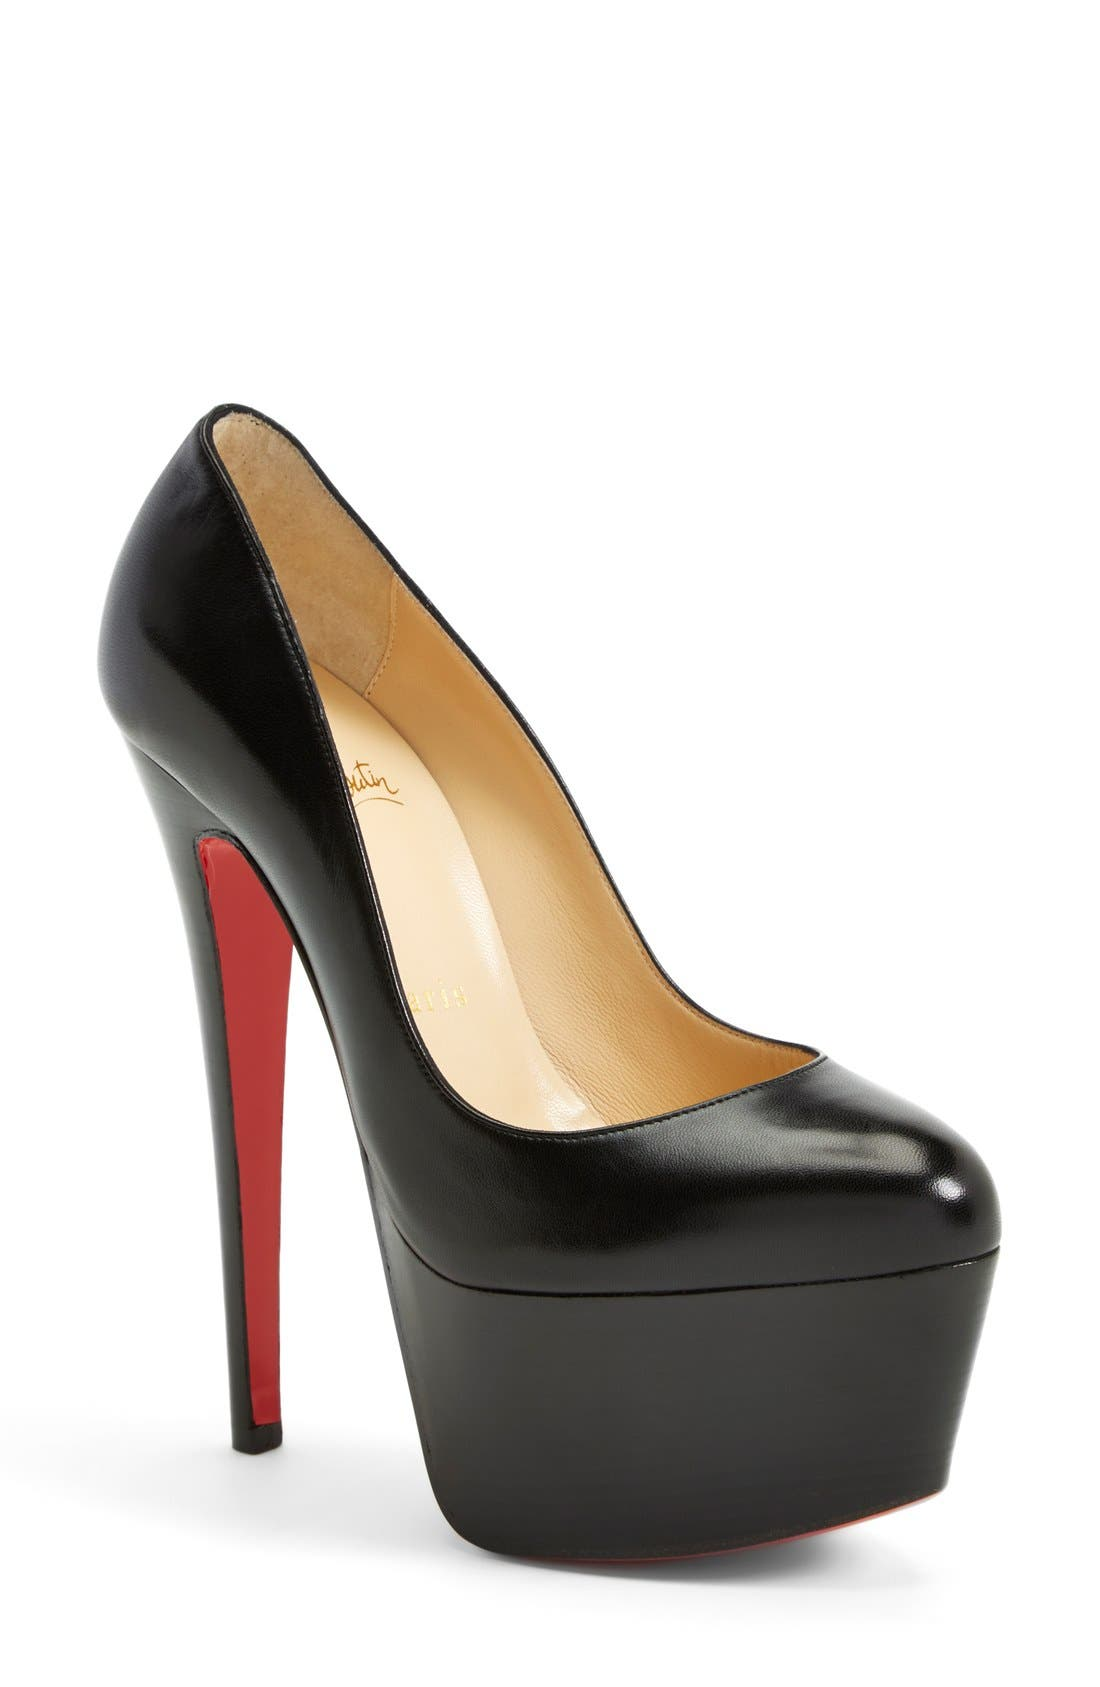 Alternate Image 1 Selected - Christian Louboutin 'Victoria' Platform Pump